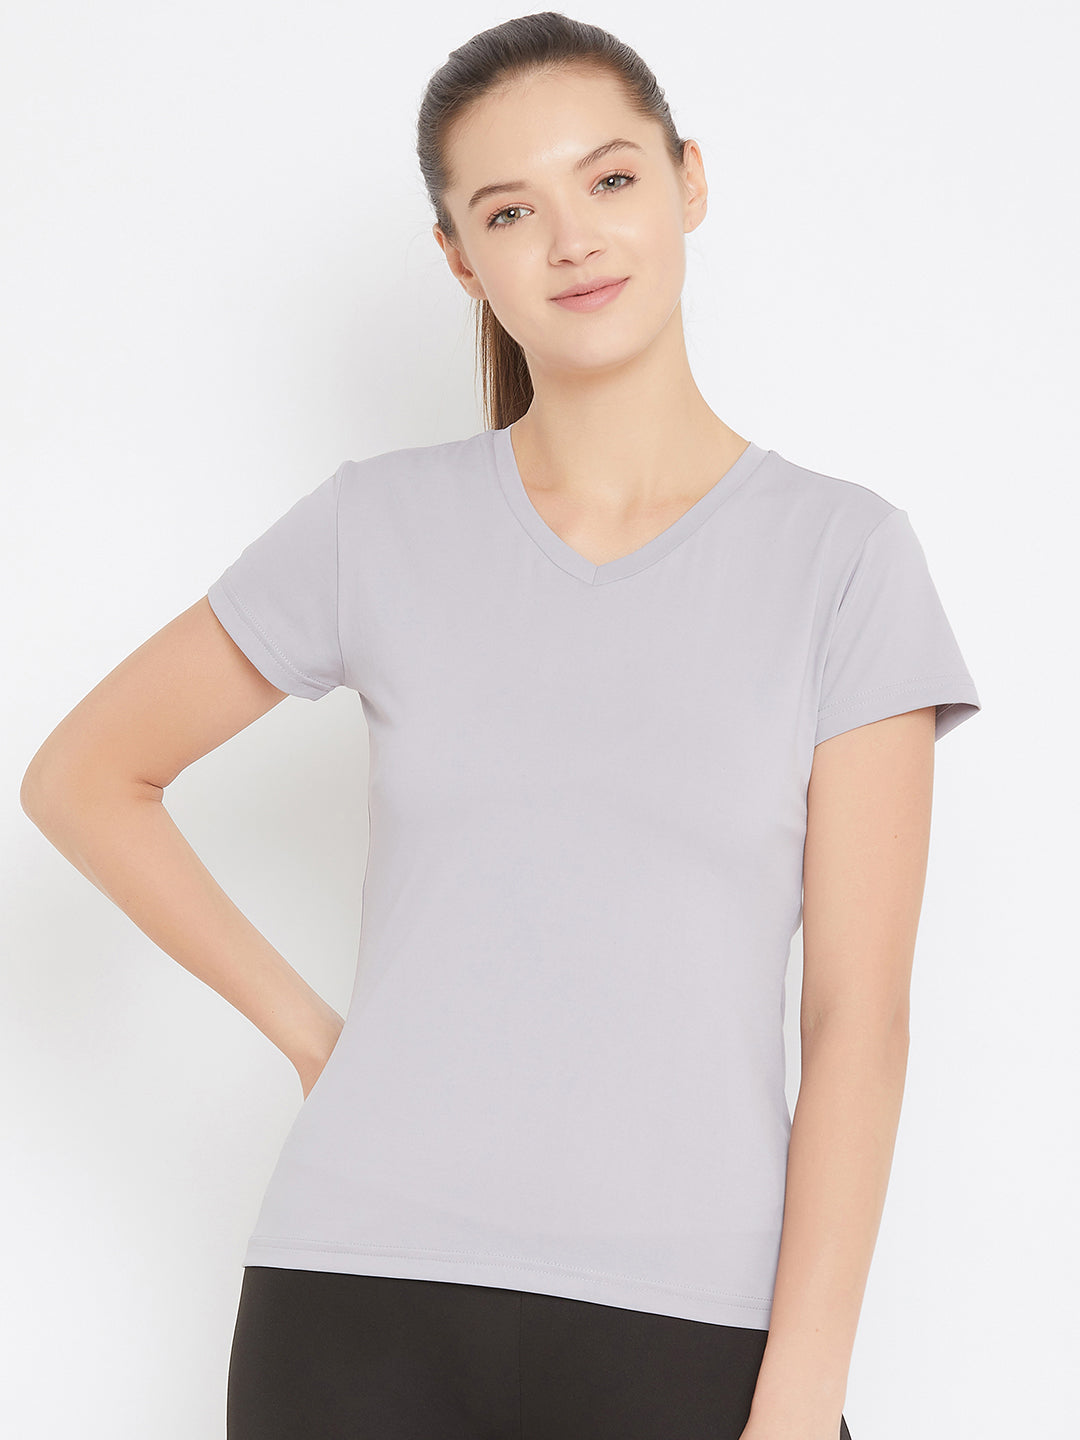 JUMP USA Women Grey Active Wear V- Neck T-shirt